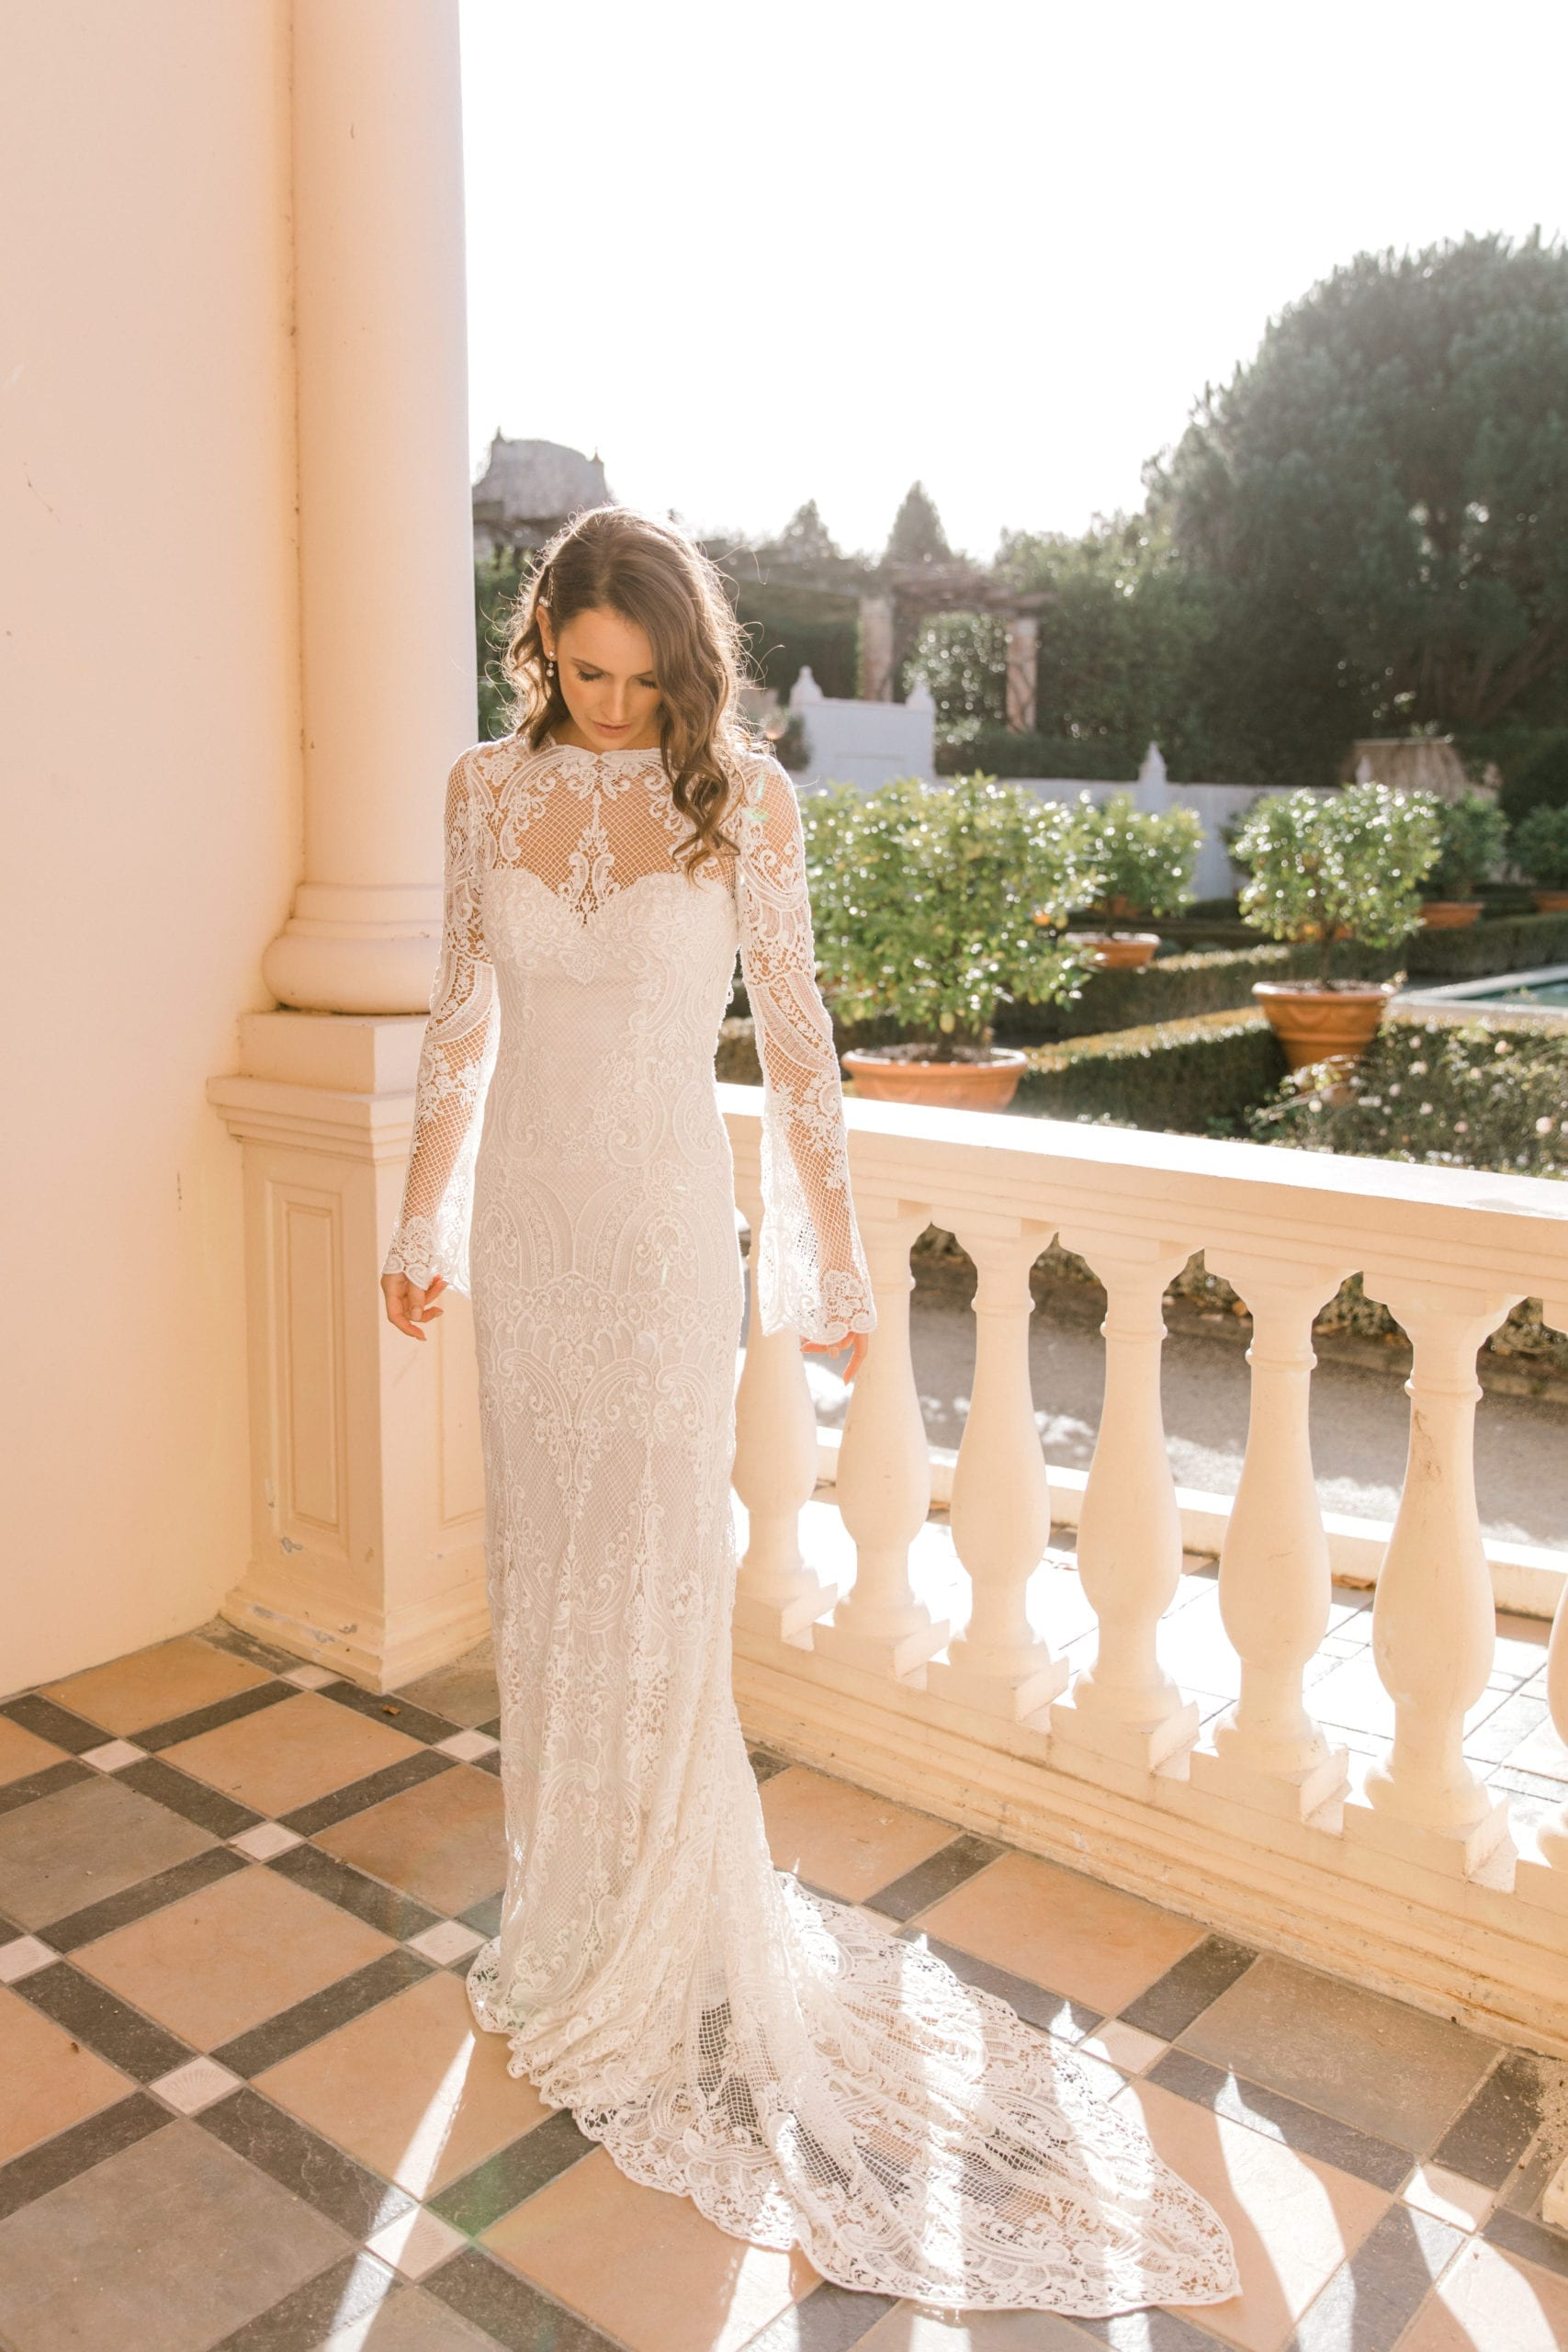 Model wearing Vinka Design Sabine Wedding Dress, a French Crochet Lace Wedding Gown on balcony with train flowing and garden behind